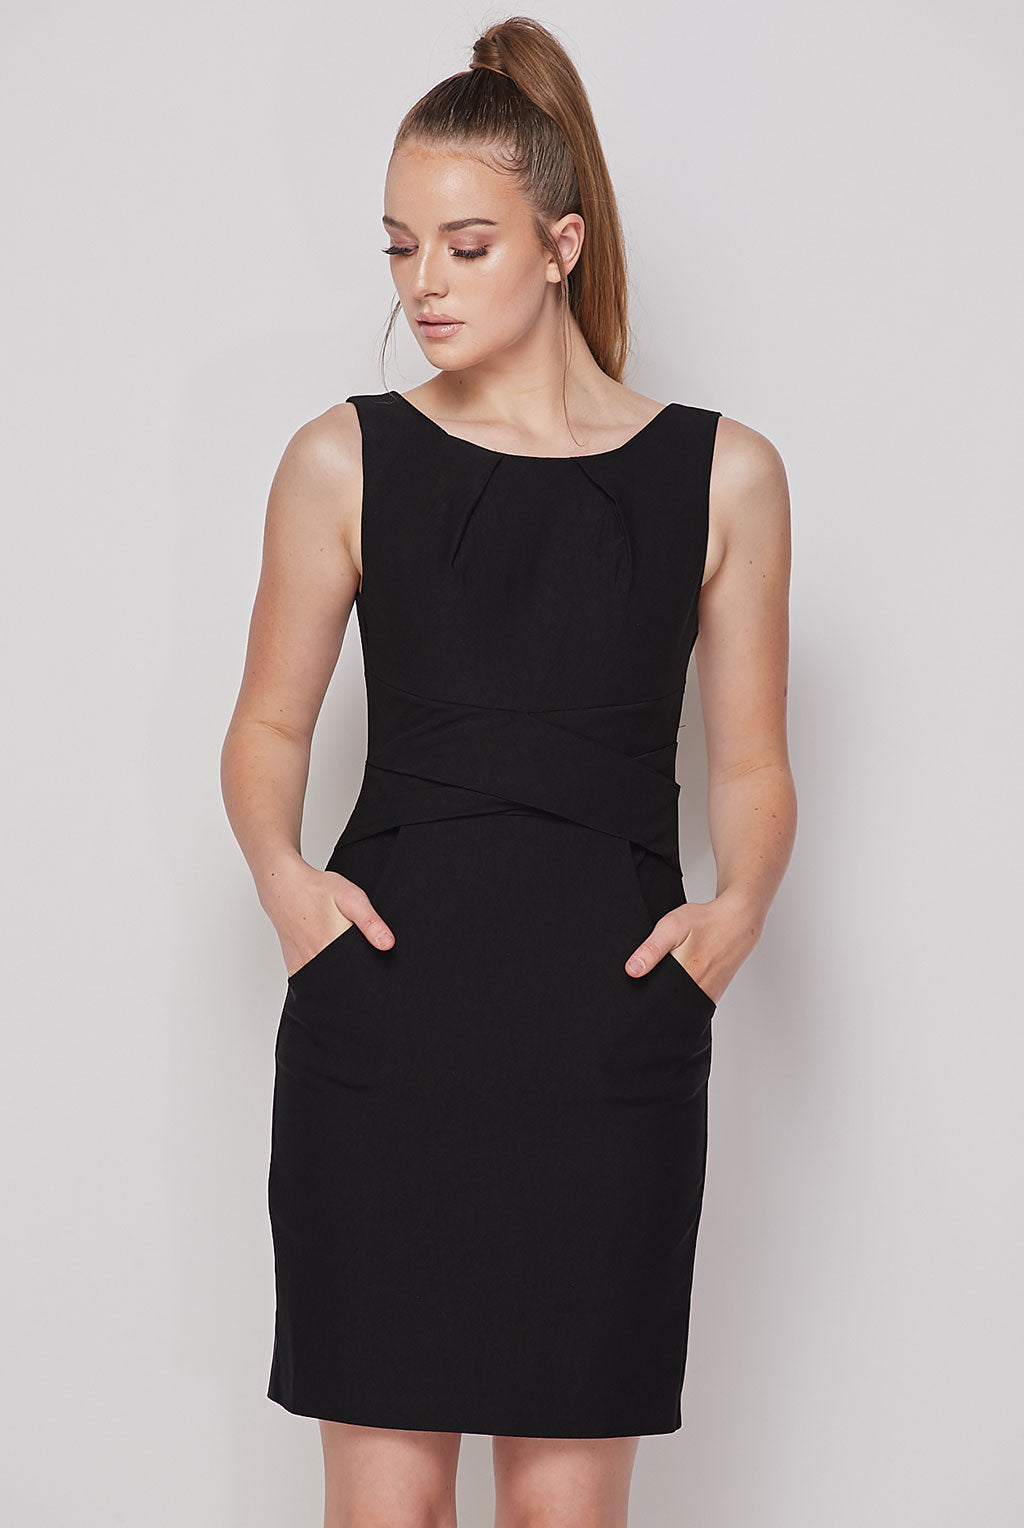 Teeze Me | Cross Waist Sheath Career Dress With Pockets | Black